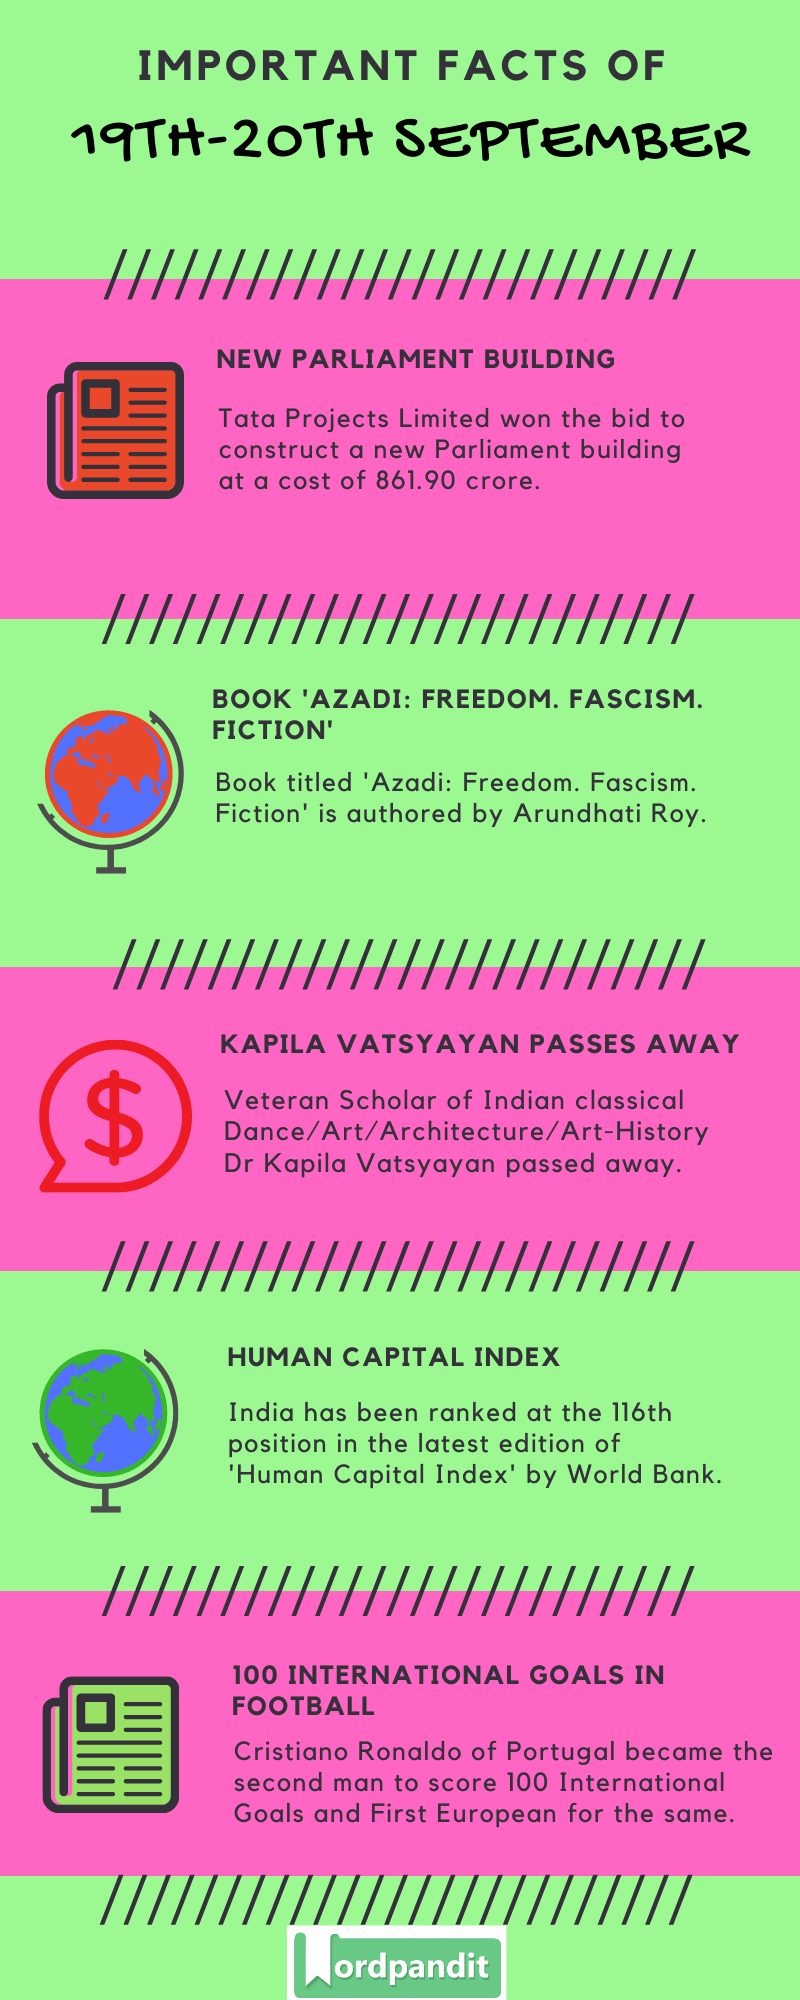 Daily Current Affairs 19th-20th September 2020 Current Affairs Quiz 19th-20th September 2020 Current Affairs Infographic